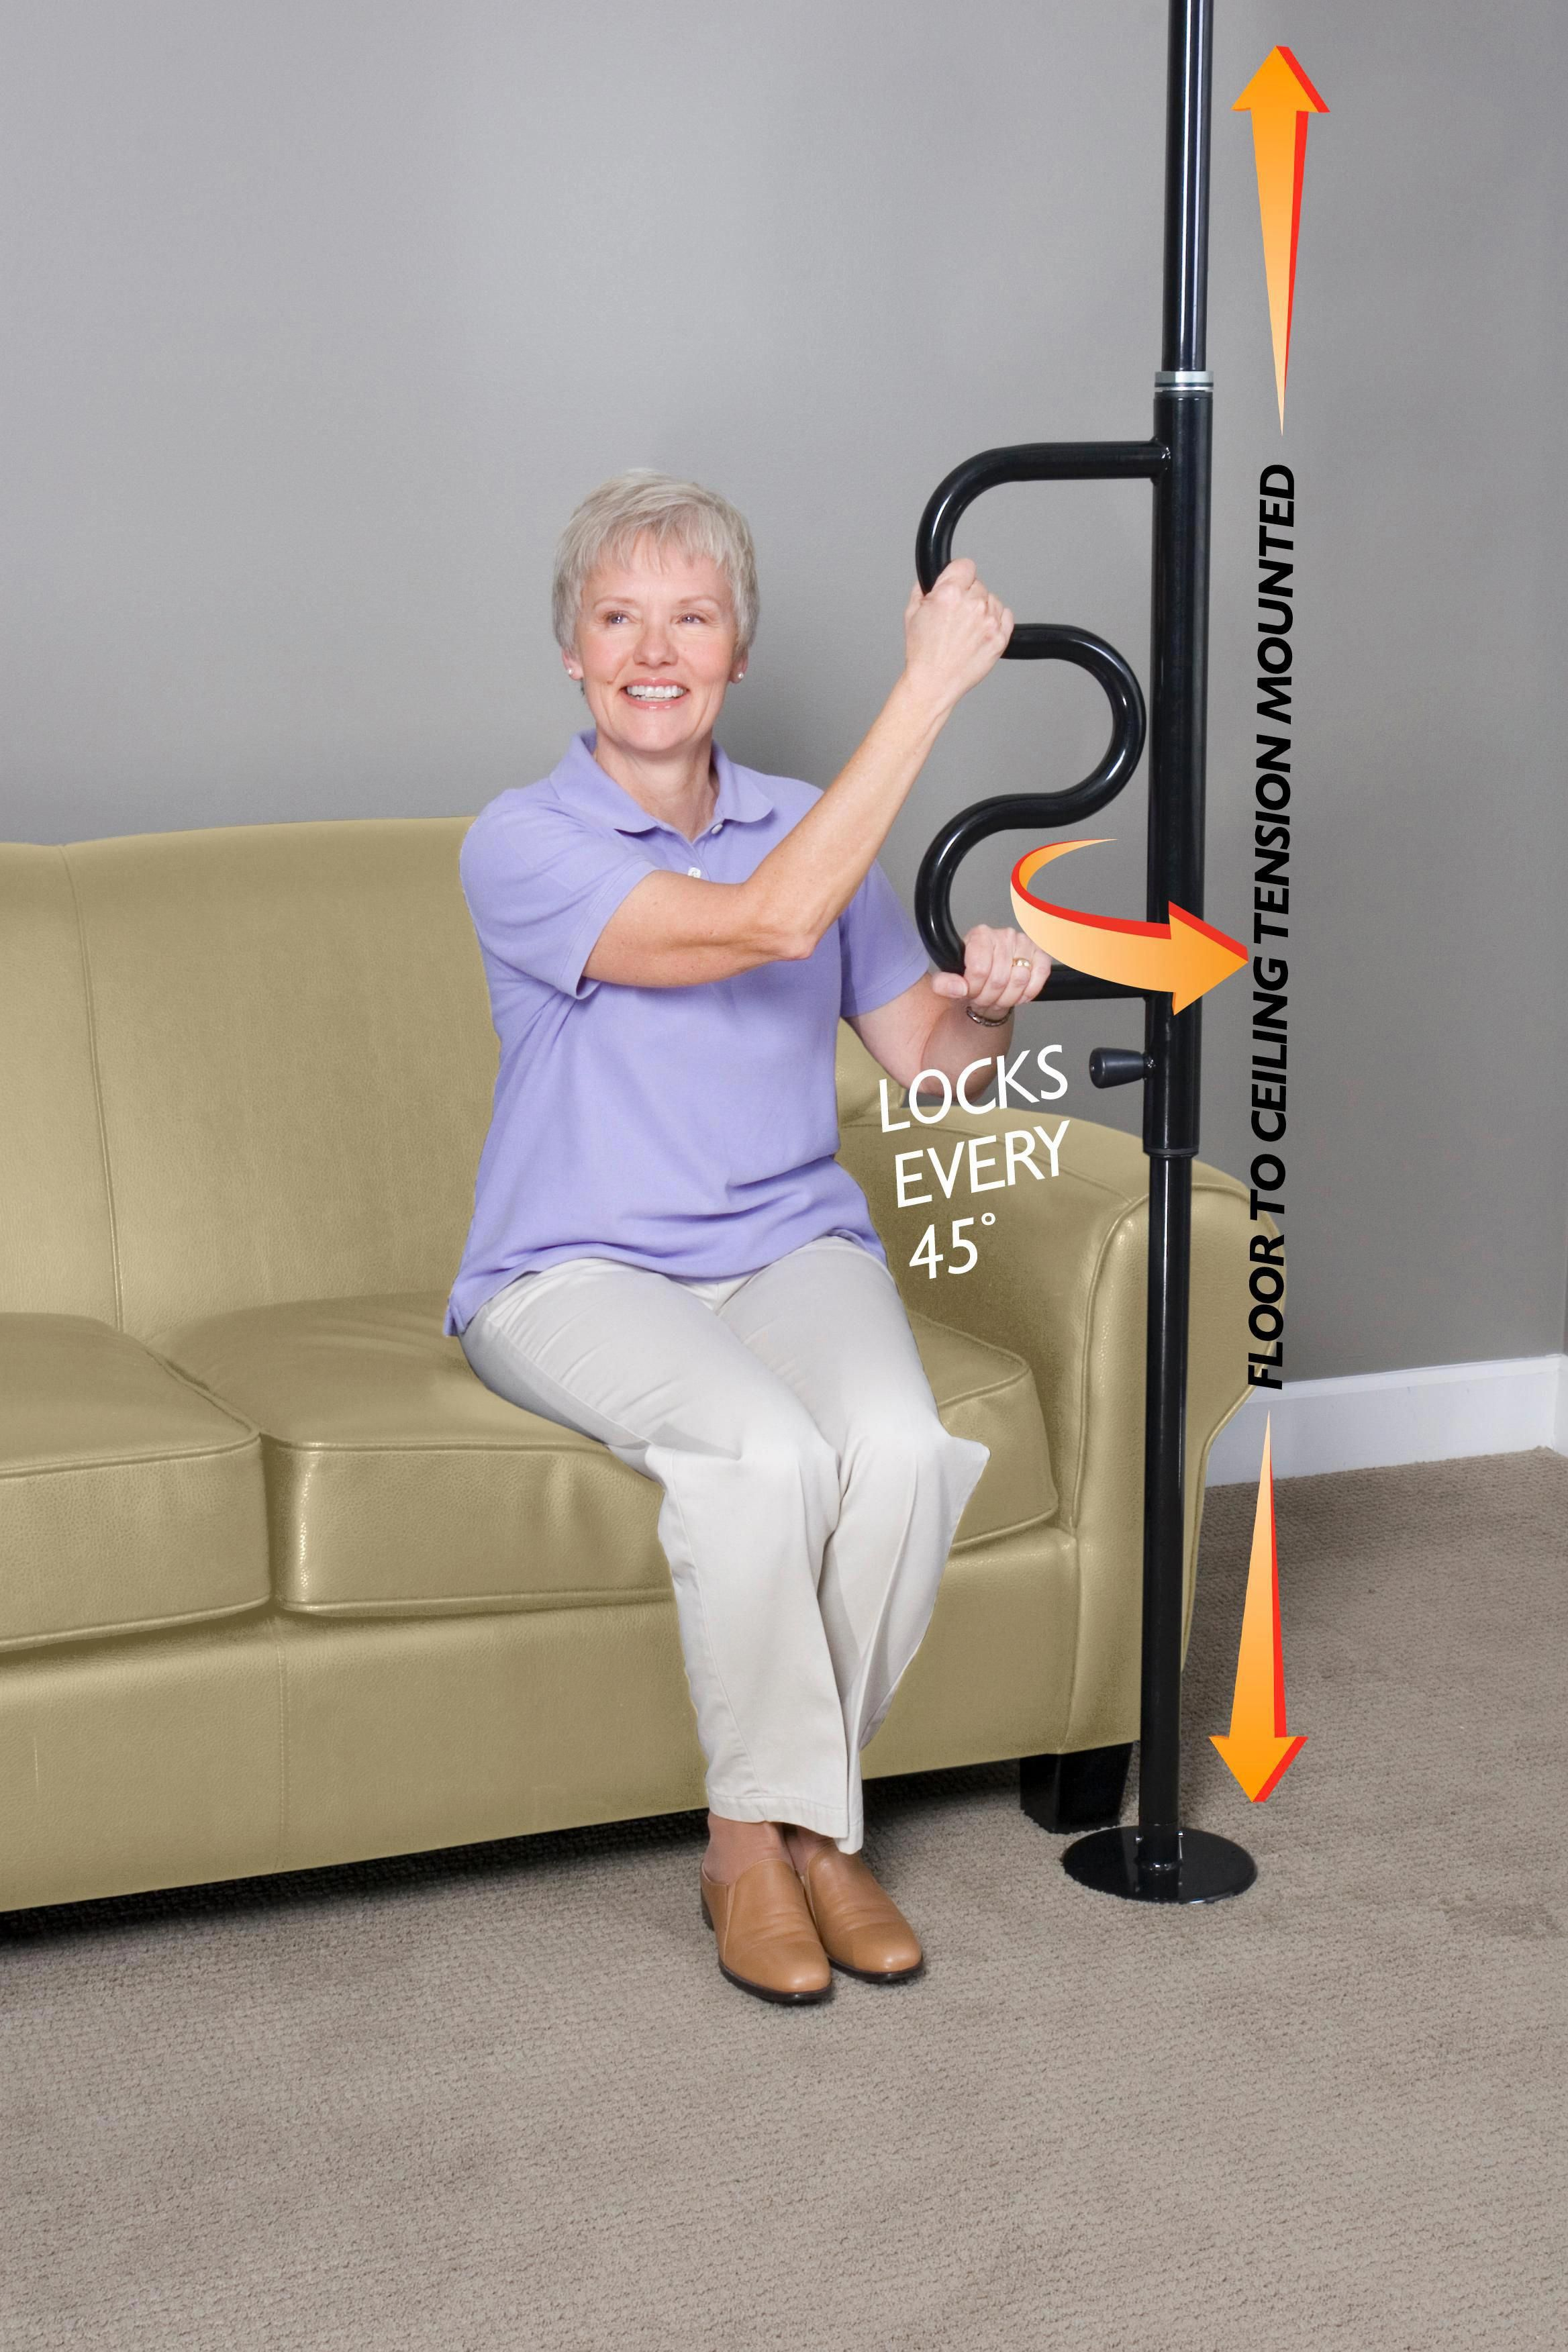 Daily Care for Seniors brings you a Stander Security Pole